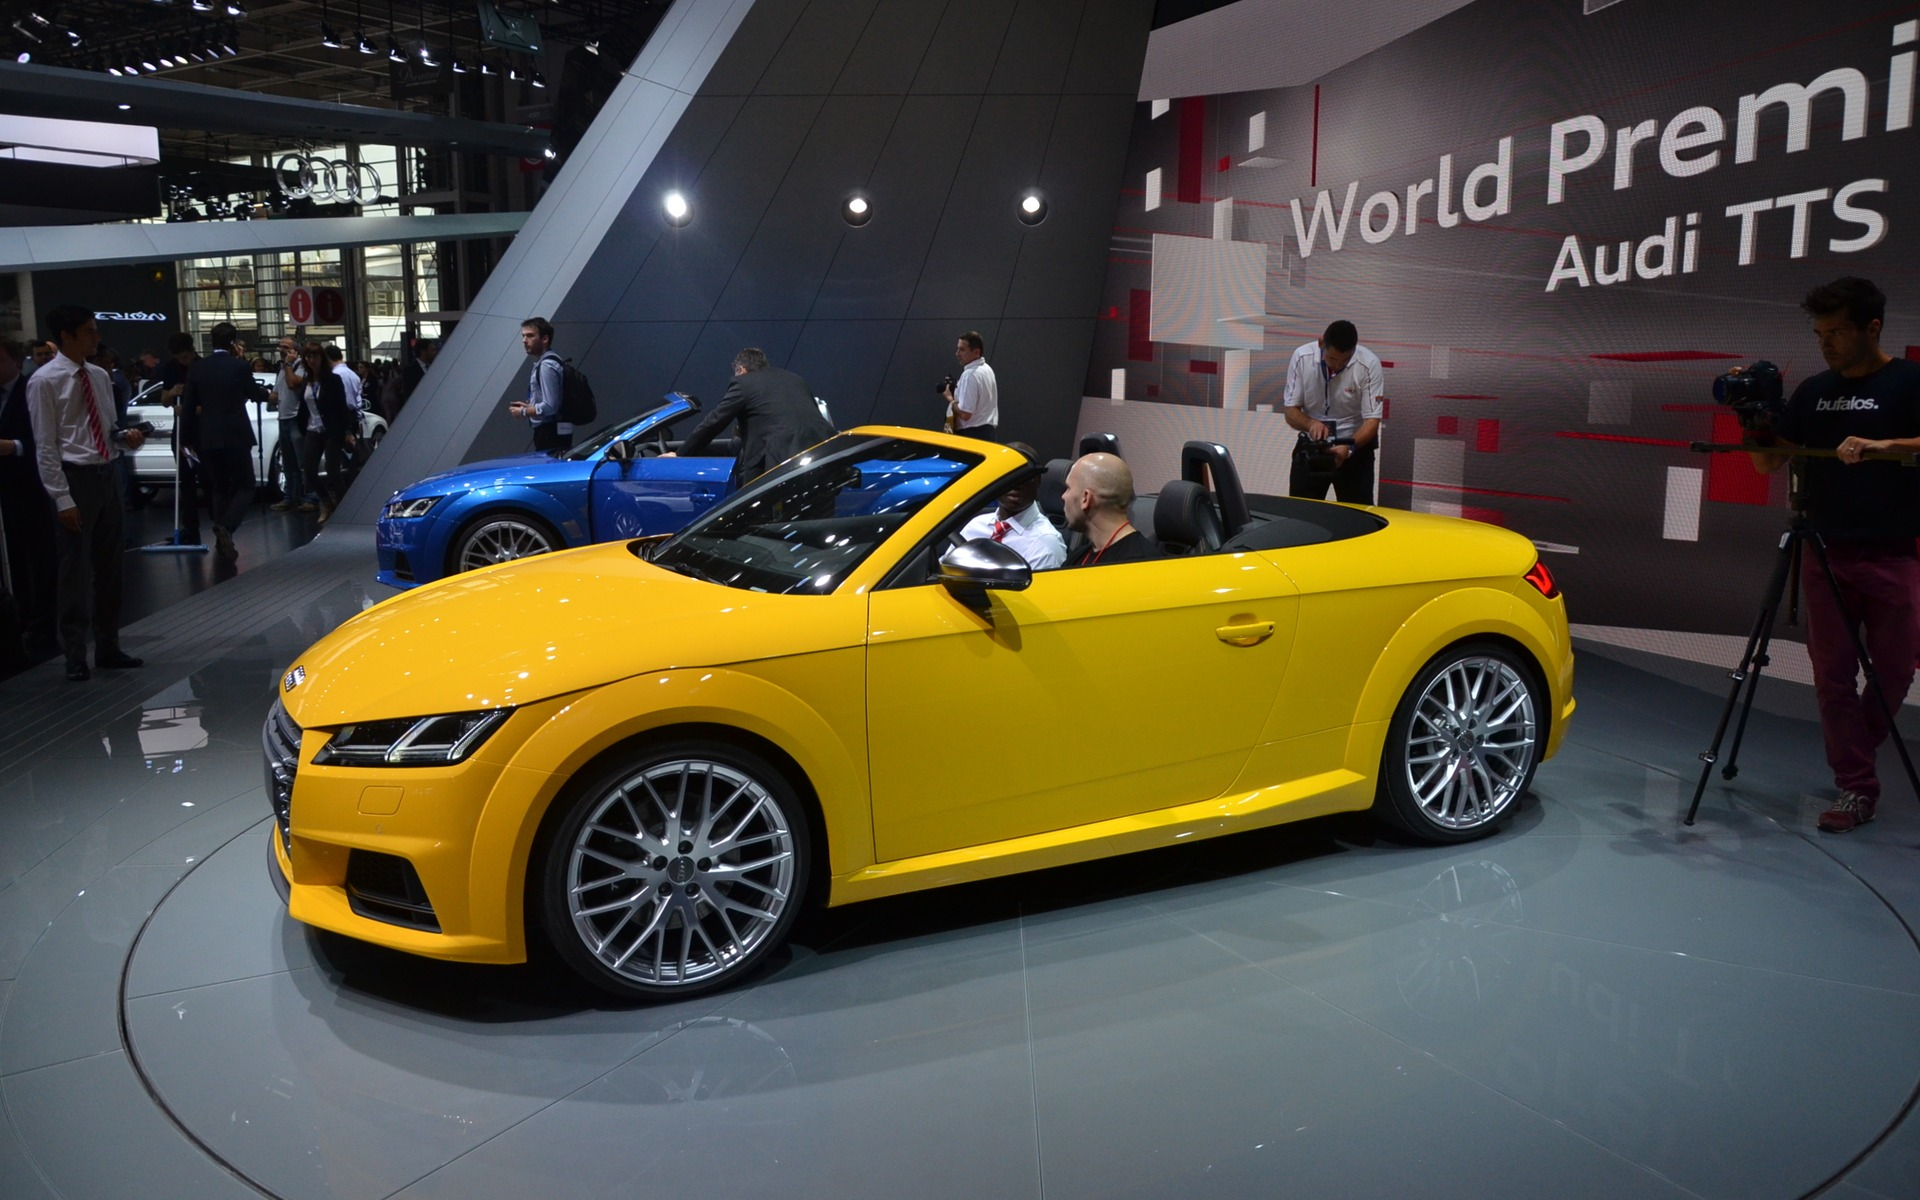 First Images of the 2015 Audi TT Roadster - 1/16